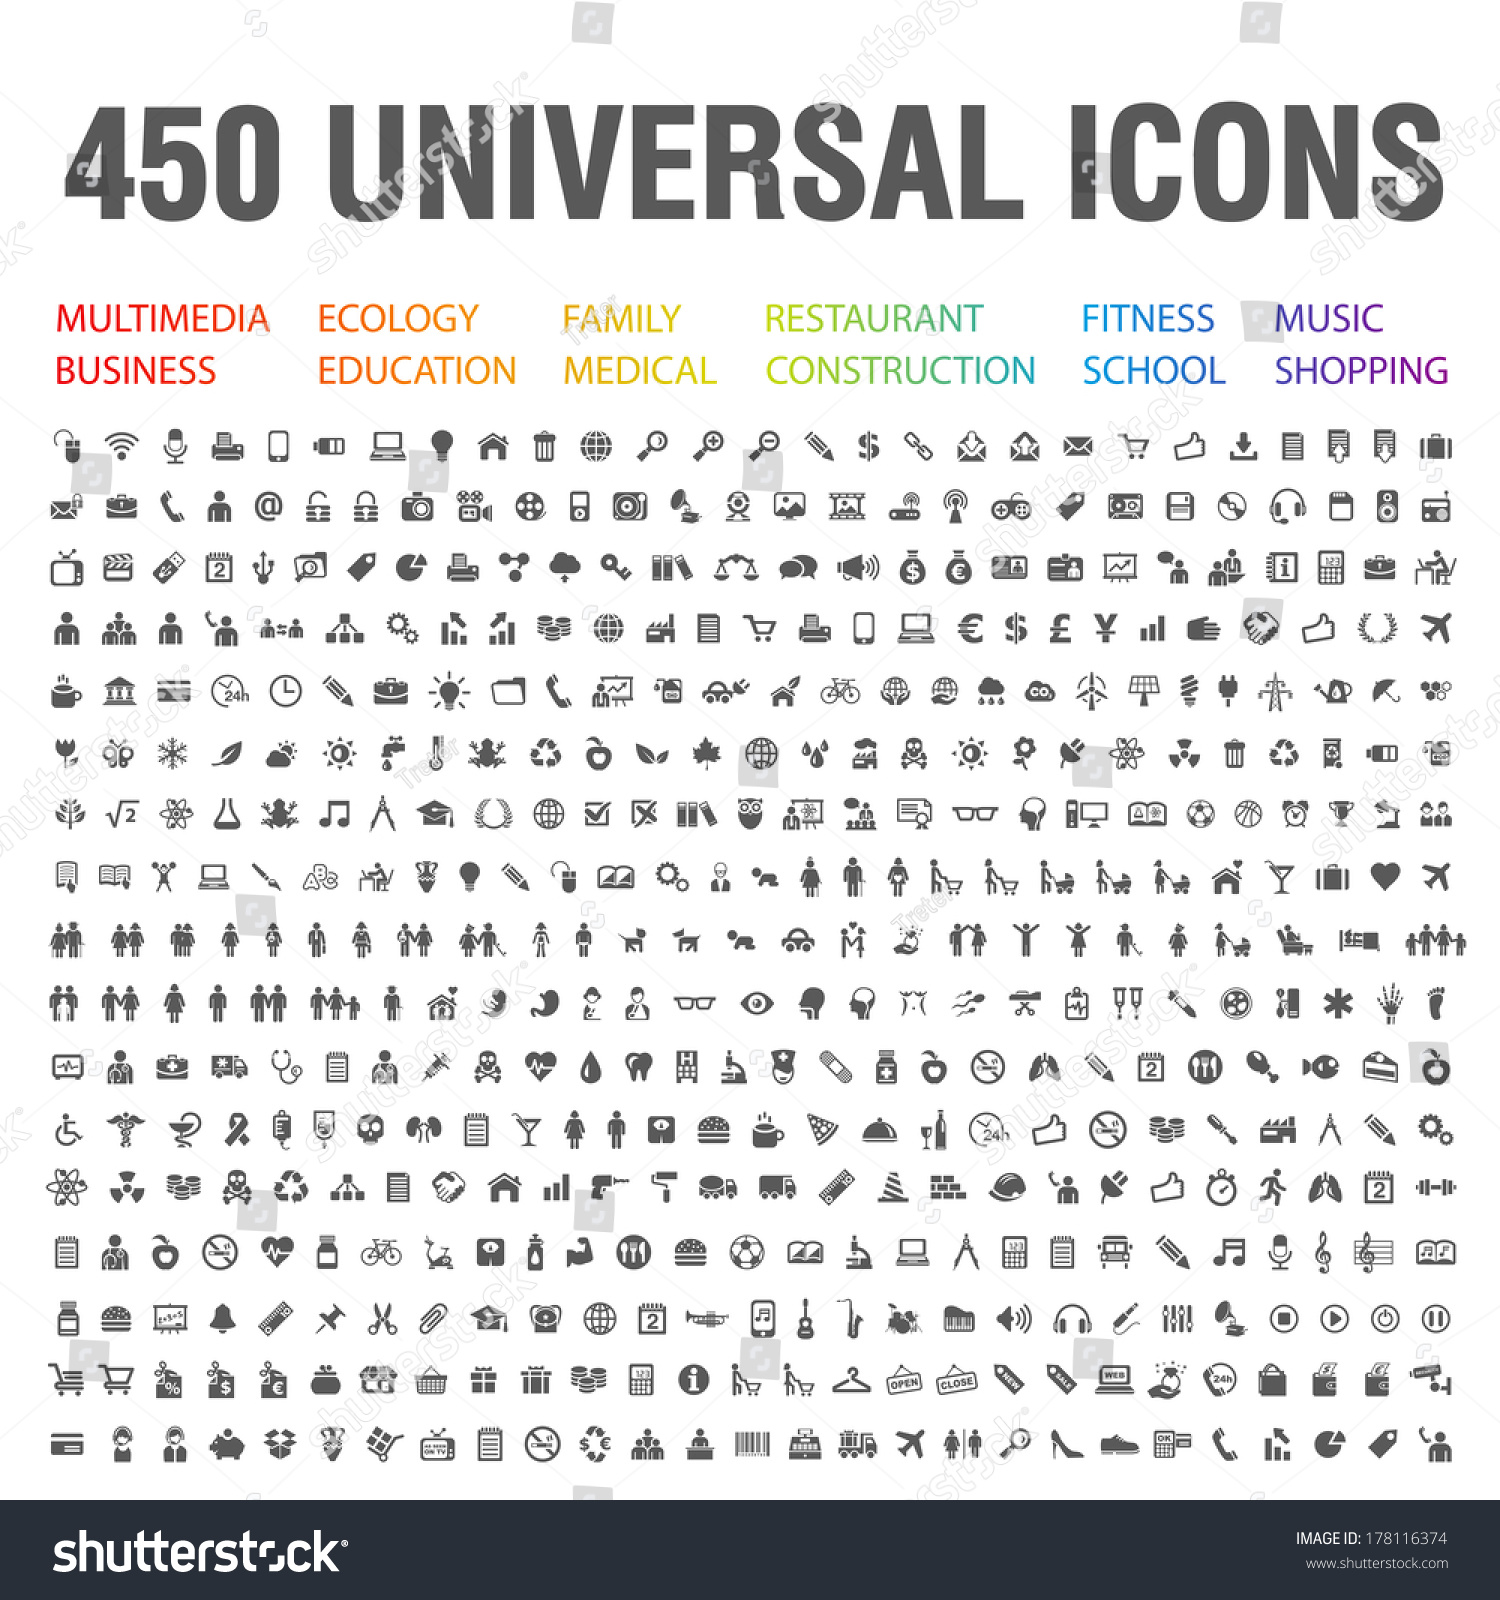 Universal Music Group Stock Quote: 450 Universal Icons Stock Vector 178116374